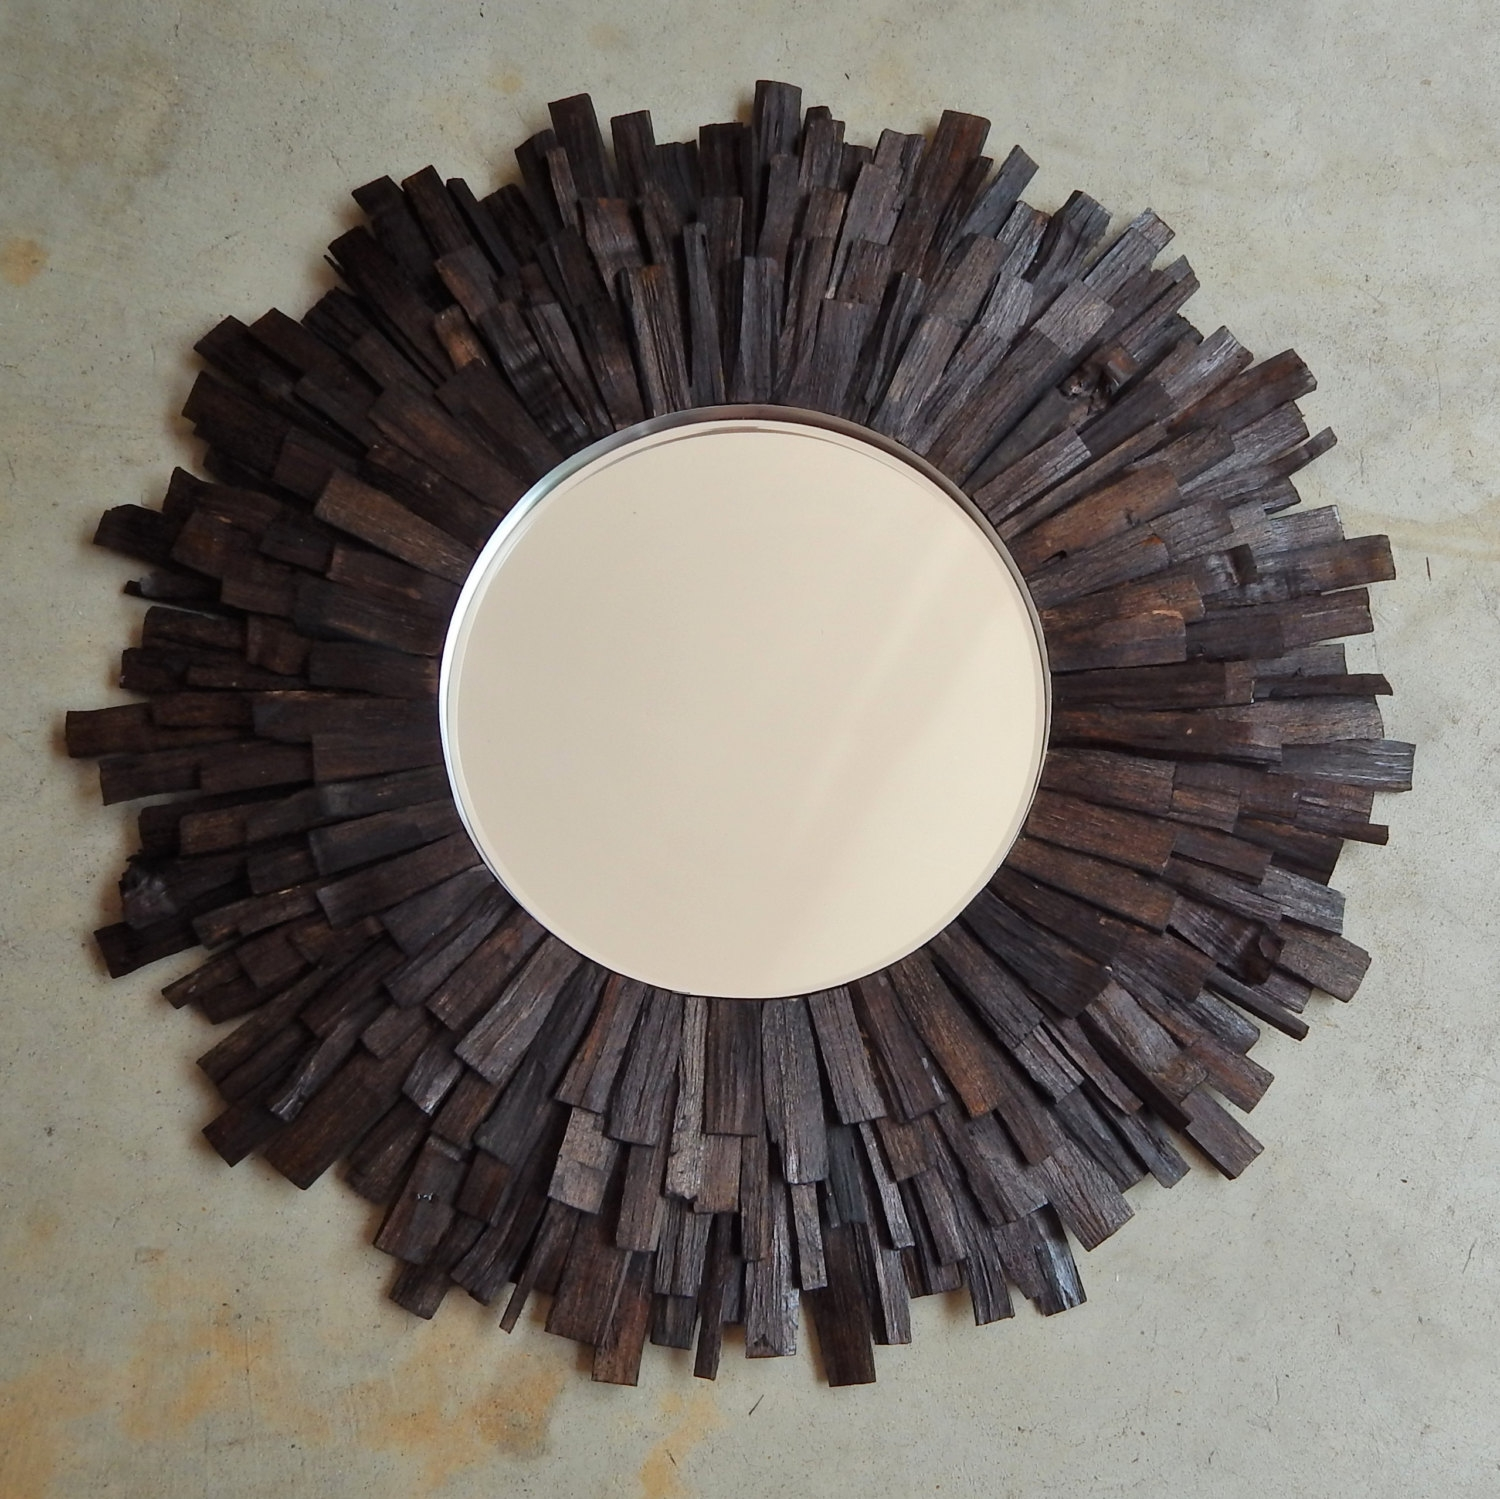 Sunburst Mirror Etsy In Extra Large Sunburst Mirror (View 13 of 15)